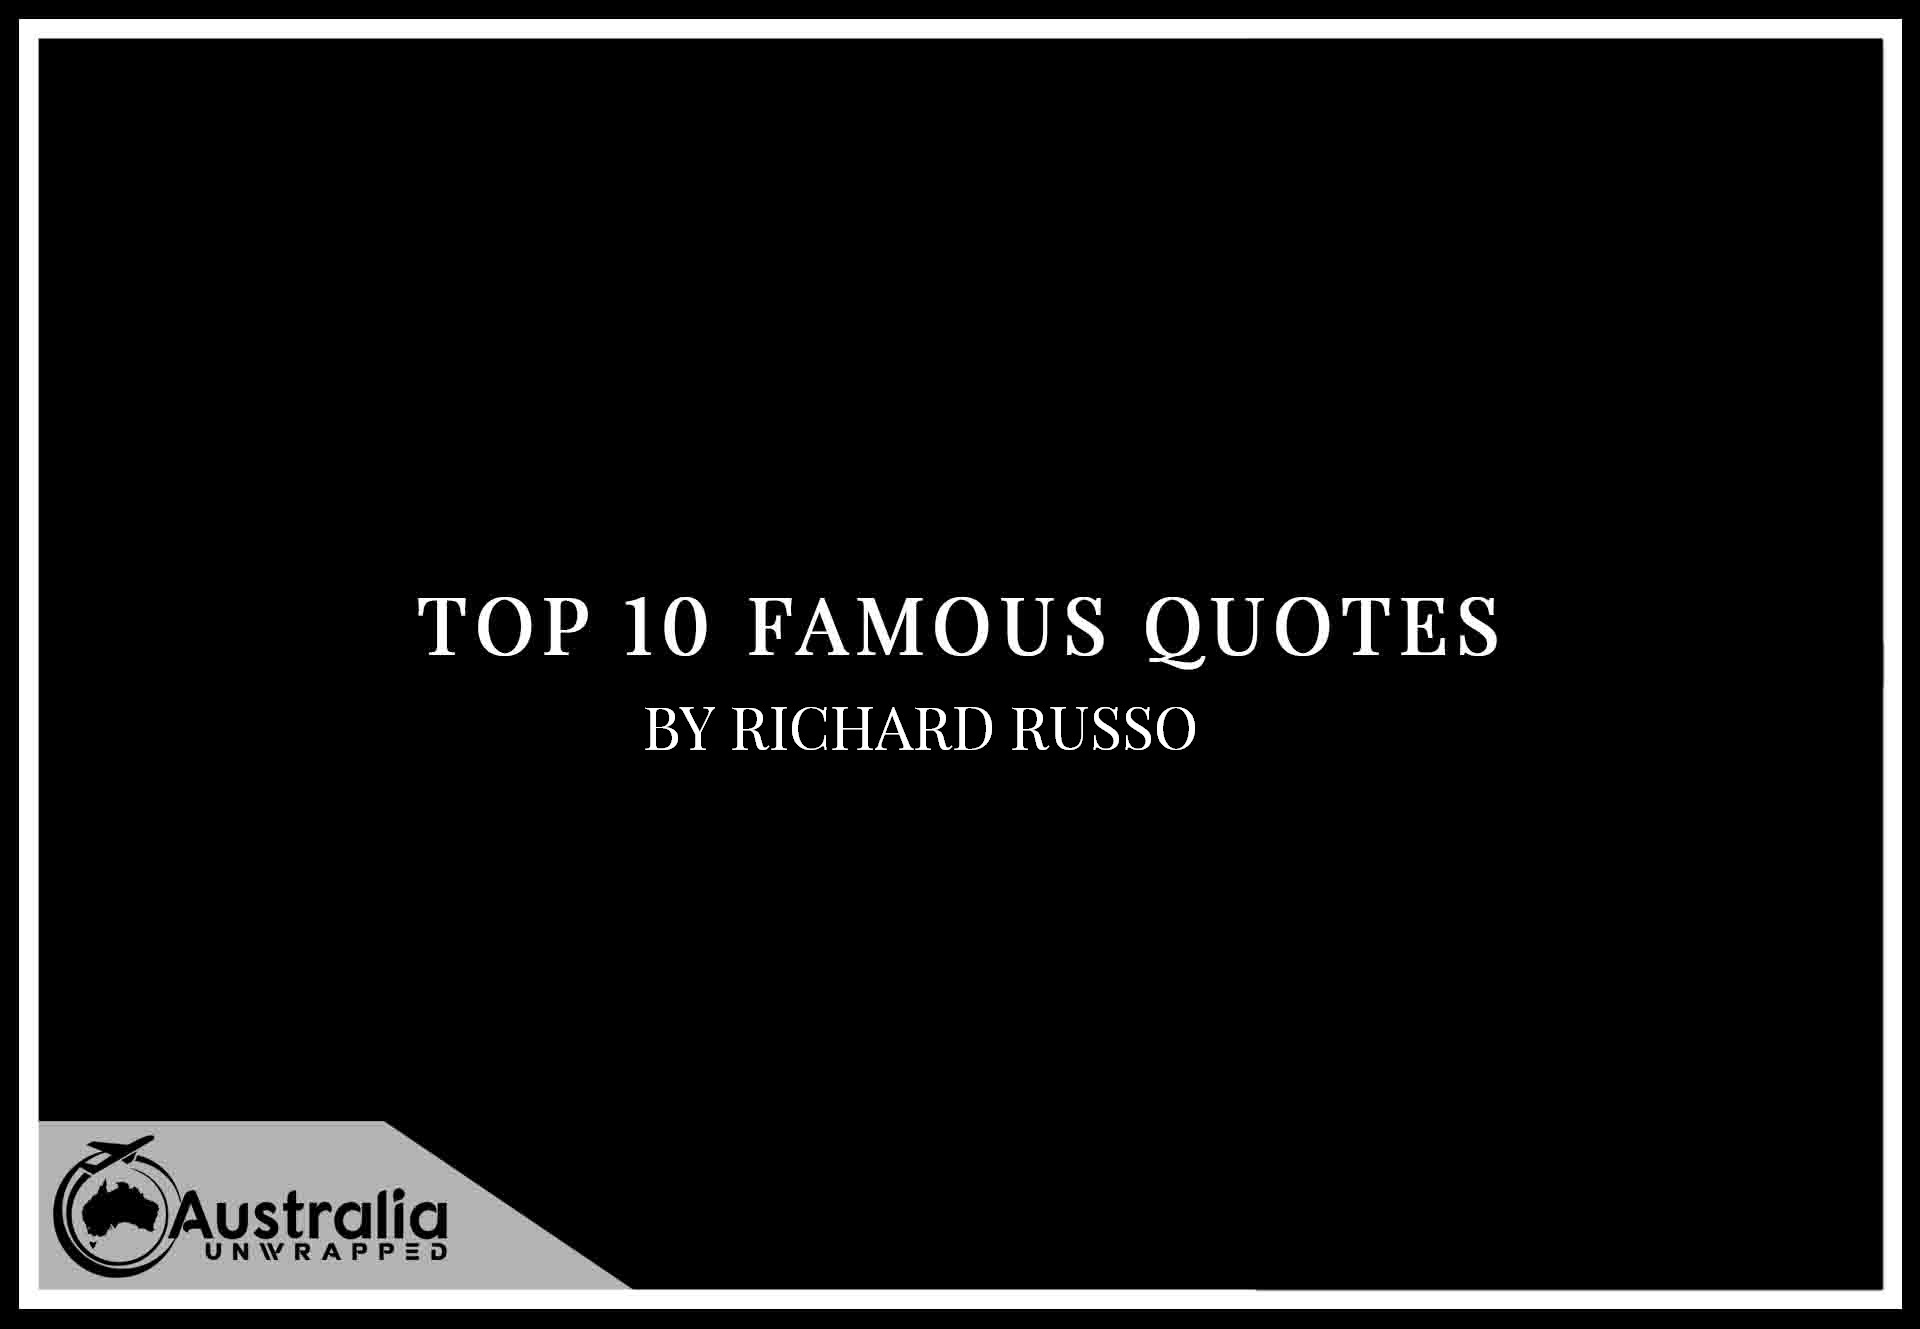 Top 10 Famous Quotes by Author Richard Russo